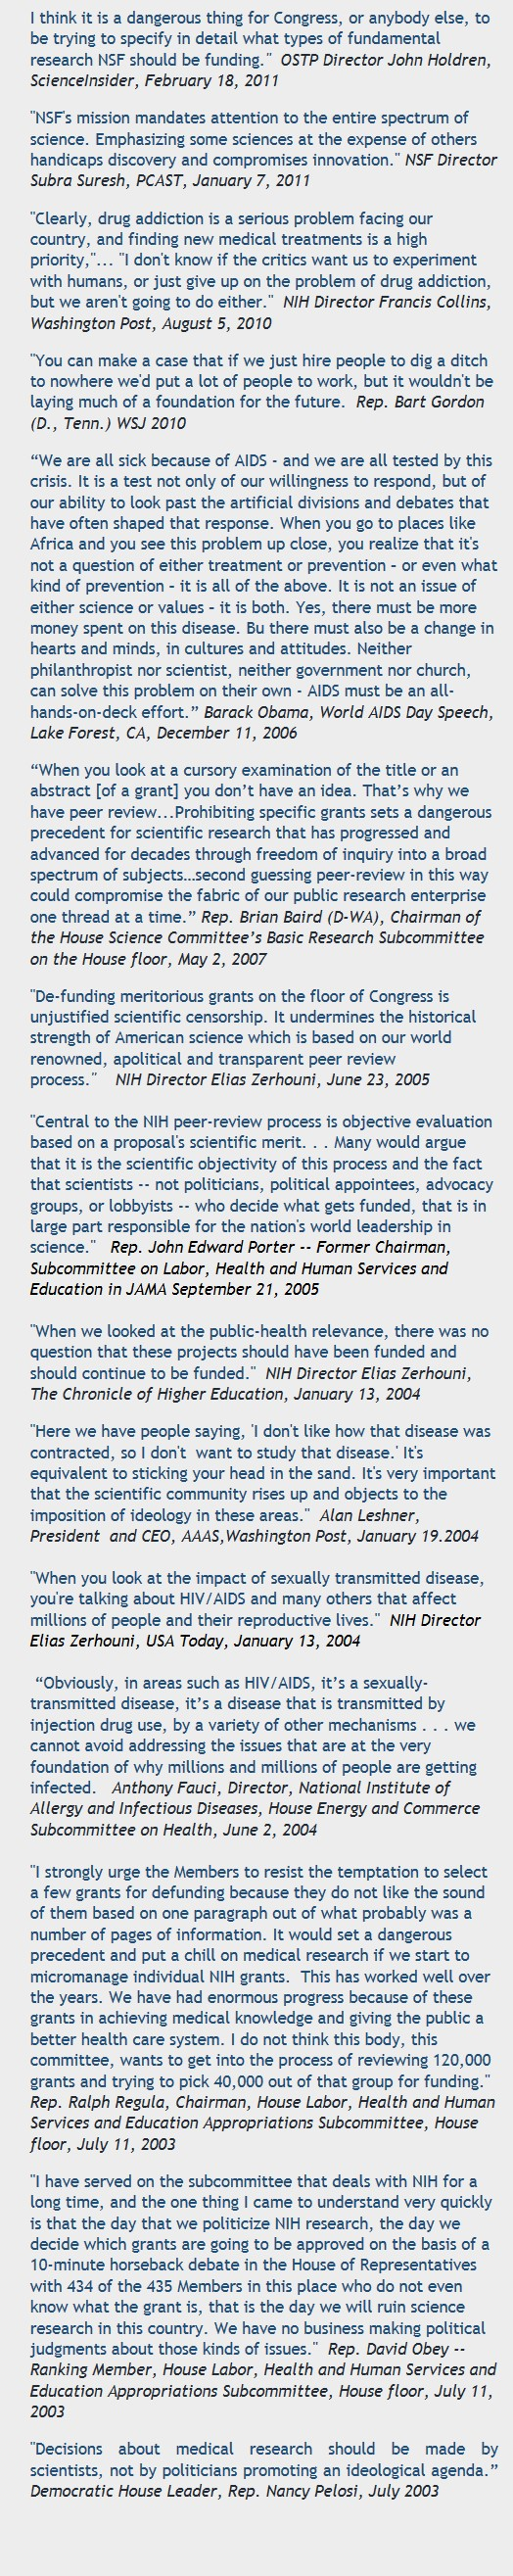 NIH Peer Review Quotes